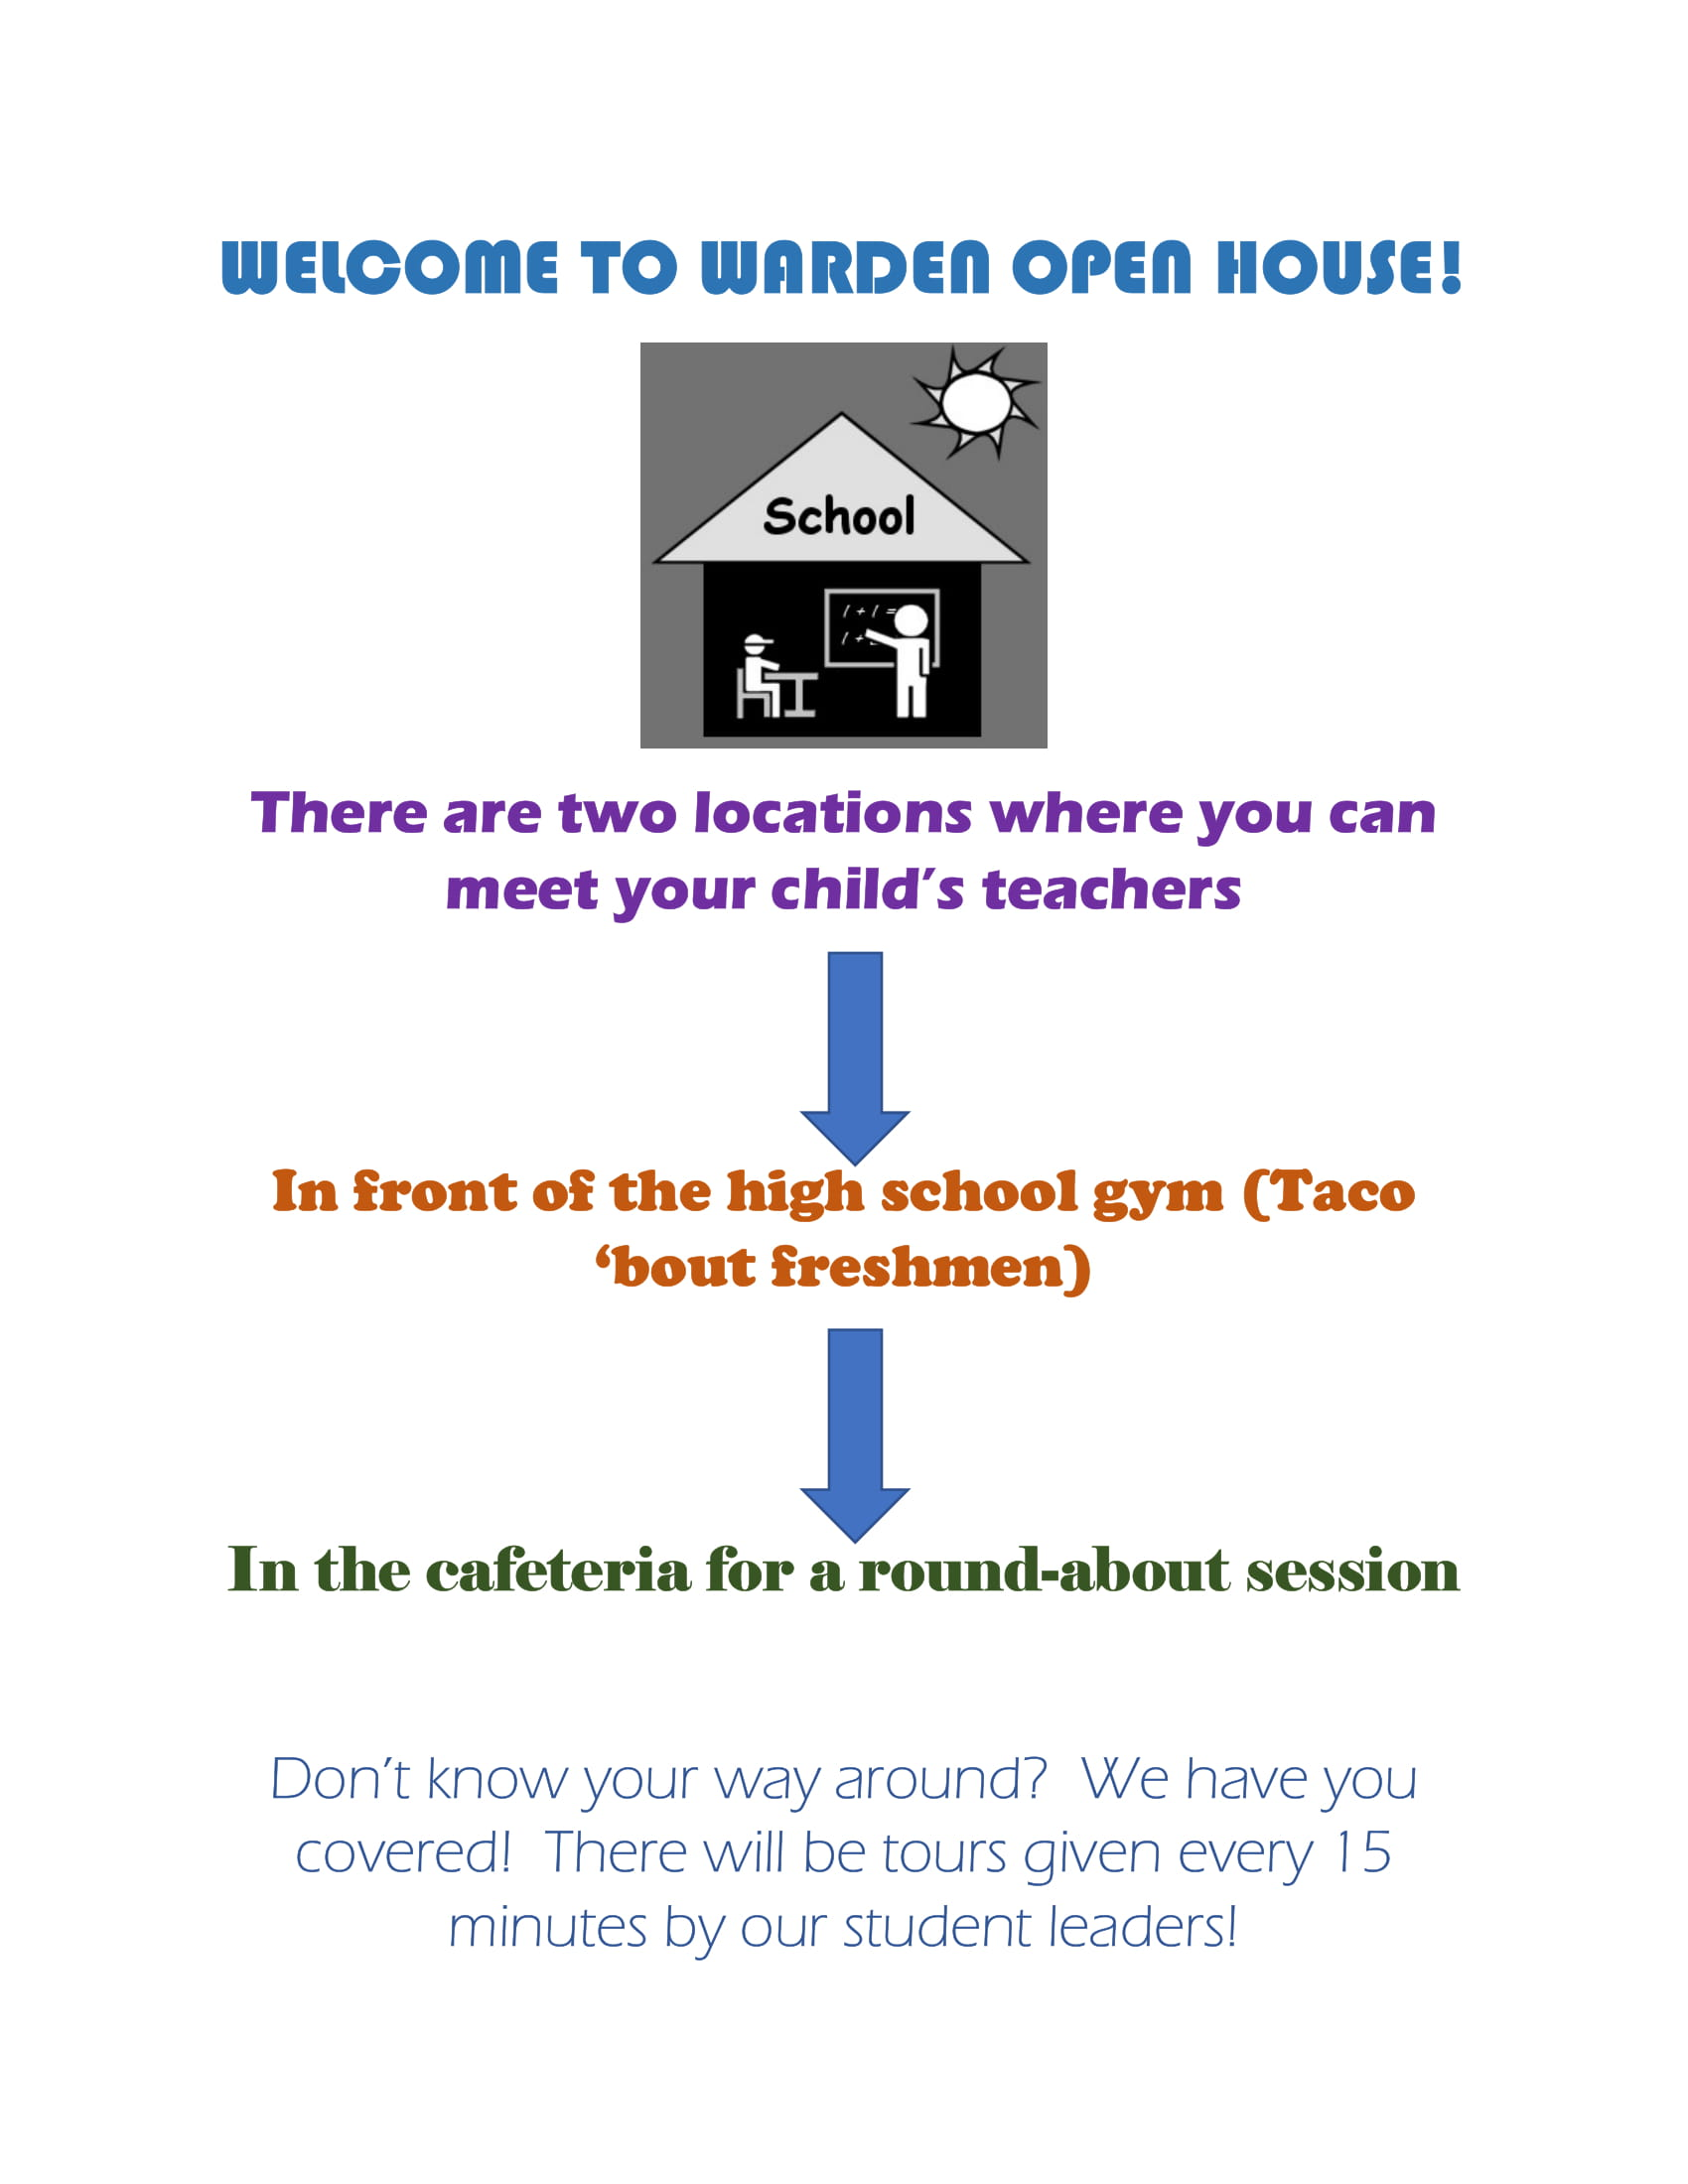 Welcome to Warden Open House, 2019